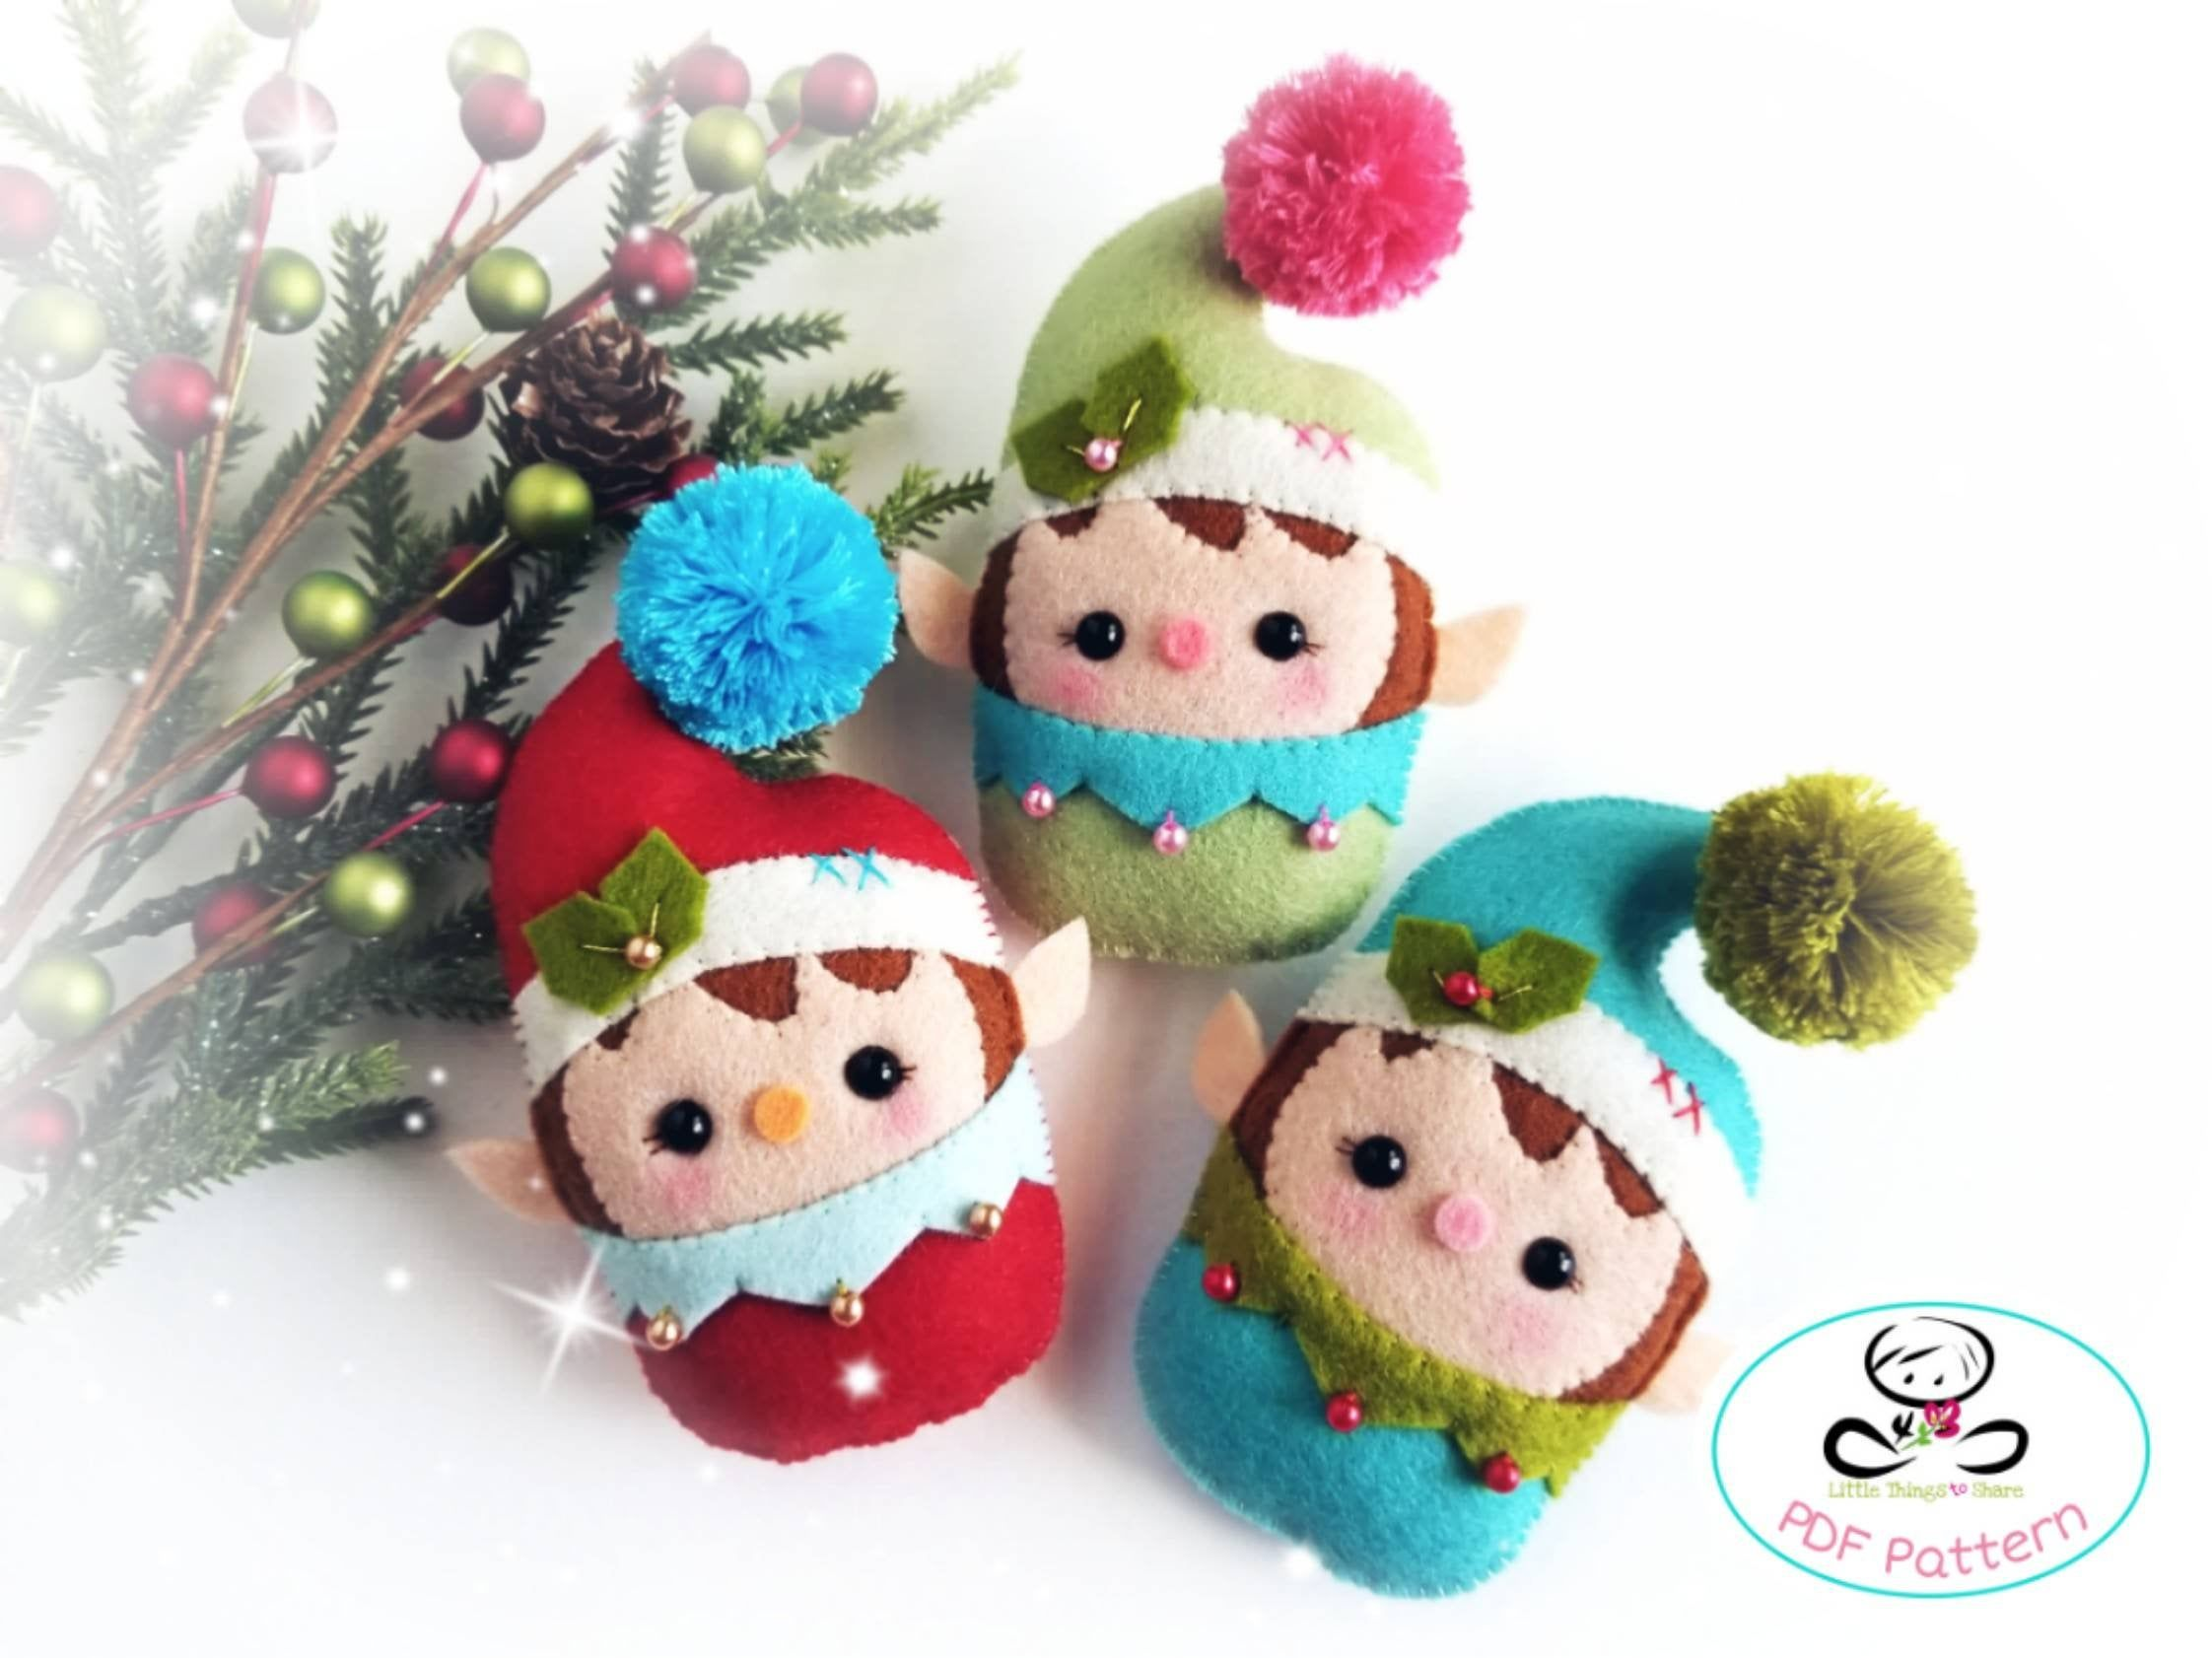 Baby Elf-PDF Pattern-Felt Christmas ornaments-Santa Helpers-DIY -Felt Garland-Gift tags-Cute elves-Christmas elves-cute elf #feltchristmasornaments